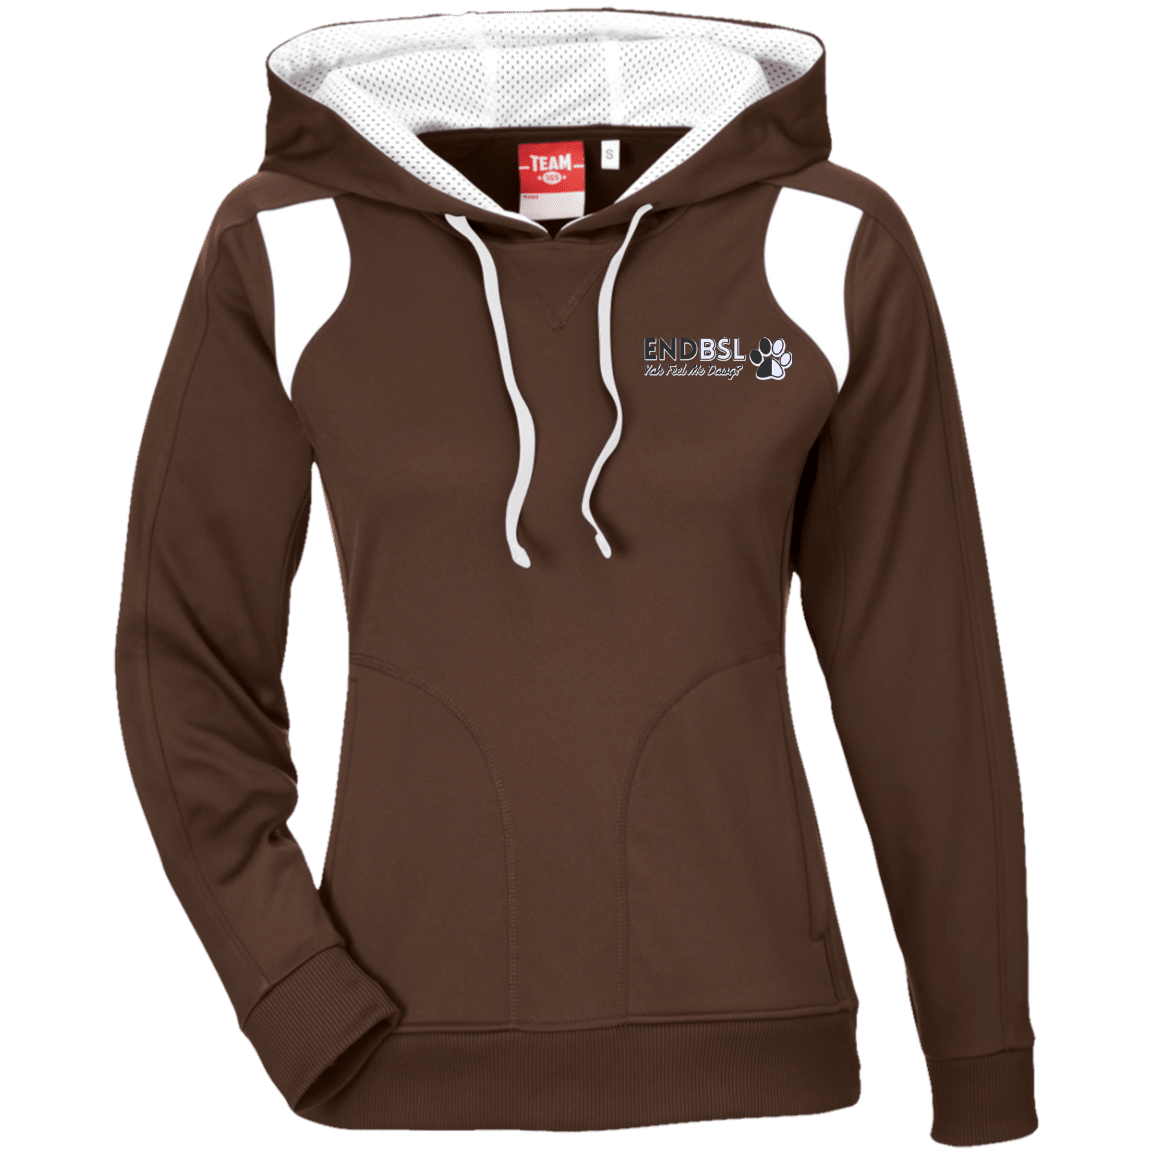 End BSL Embroidered - TT30W Team 365 Ladies' Colorblock Poly Hoodie By Little Pit Shop Brown/White X-Small - Little Pit Shop